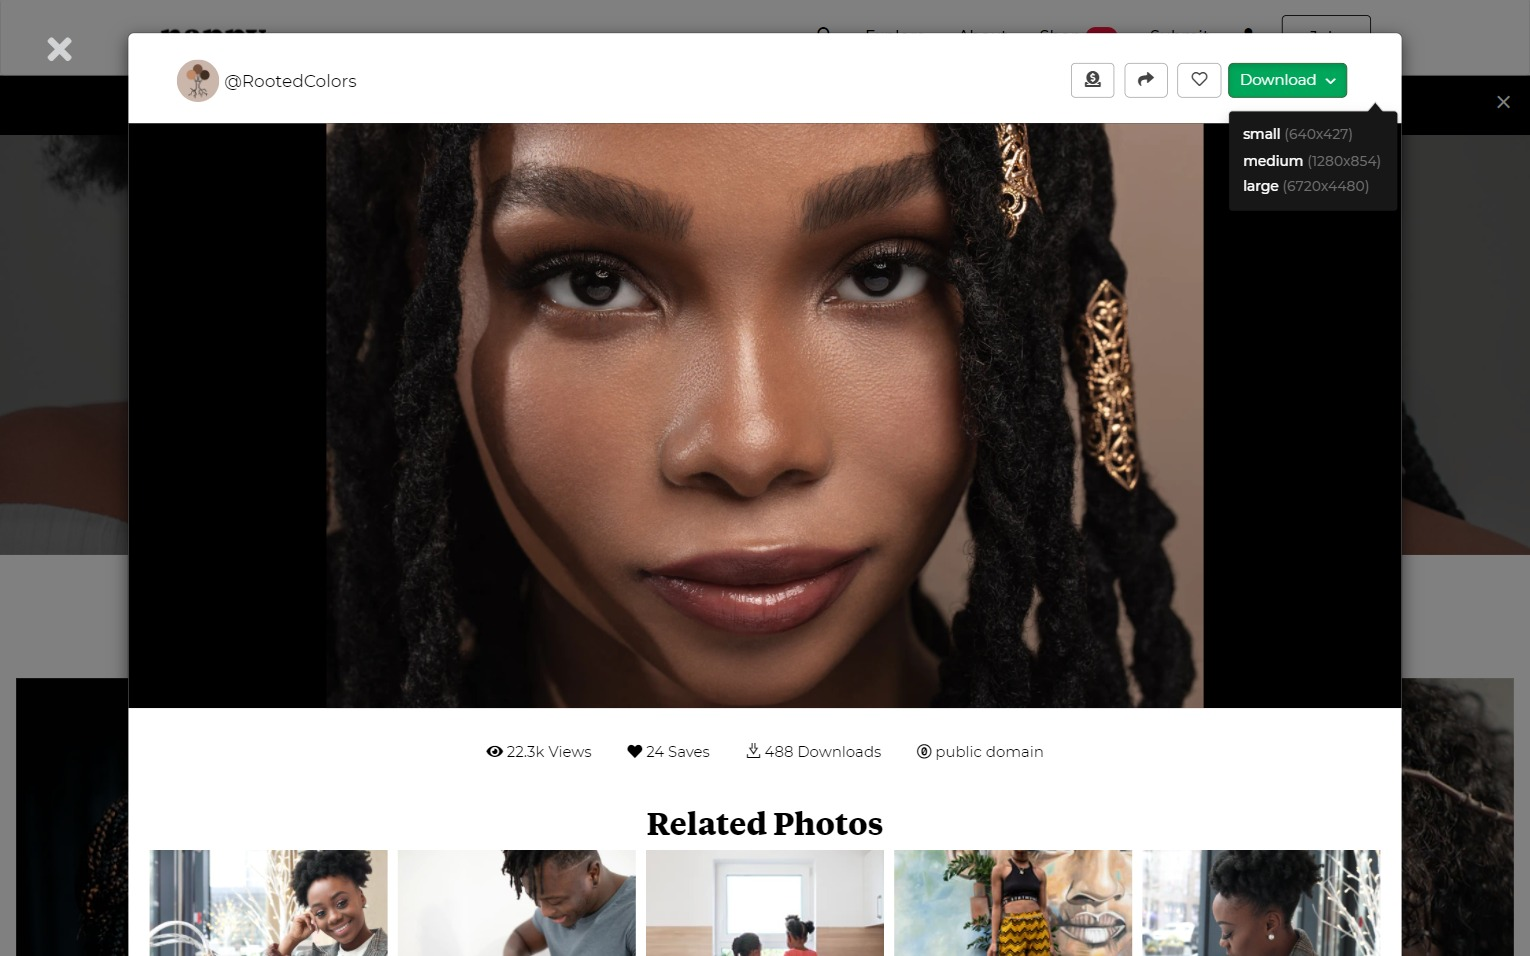 Nappy stock photos interface featuring BIPOC woman smiling at camera